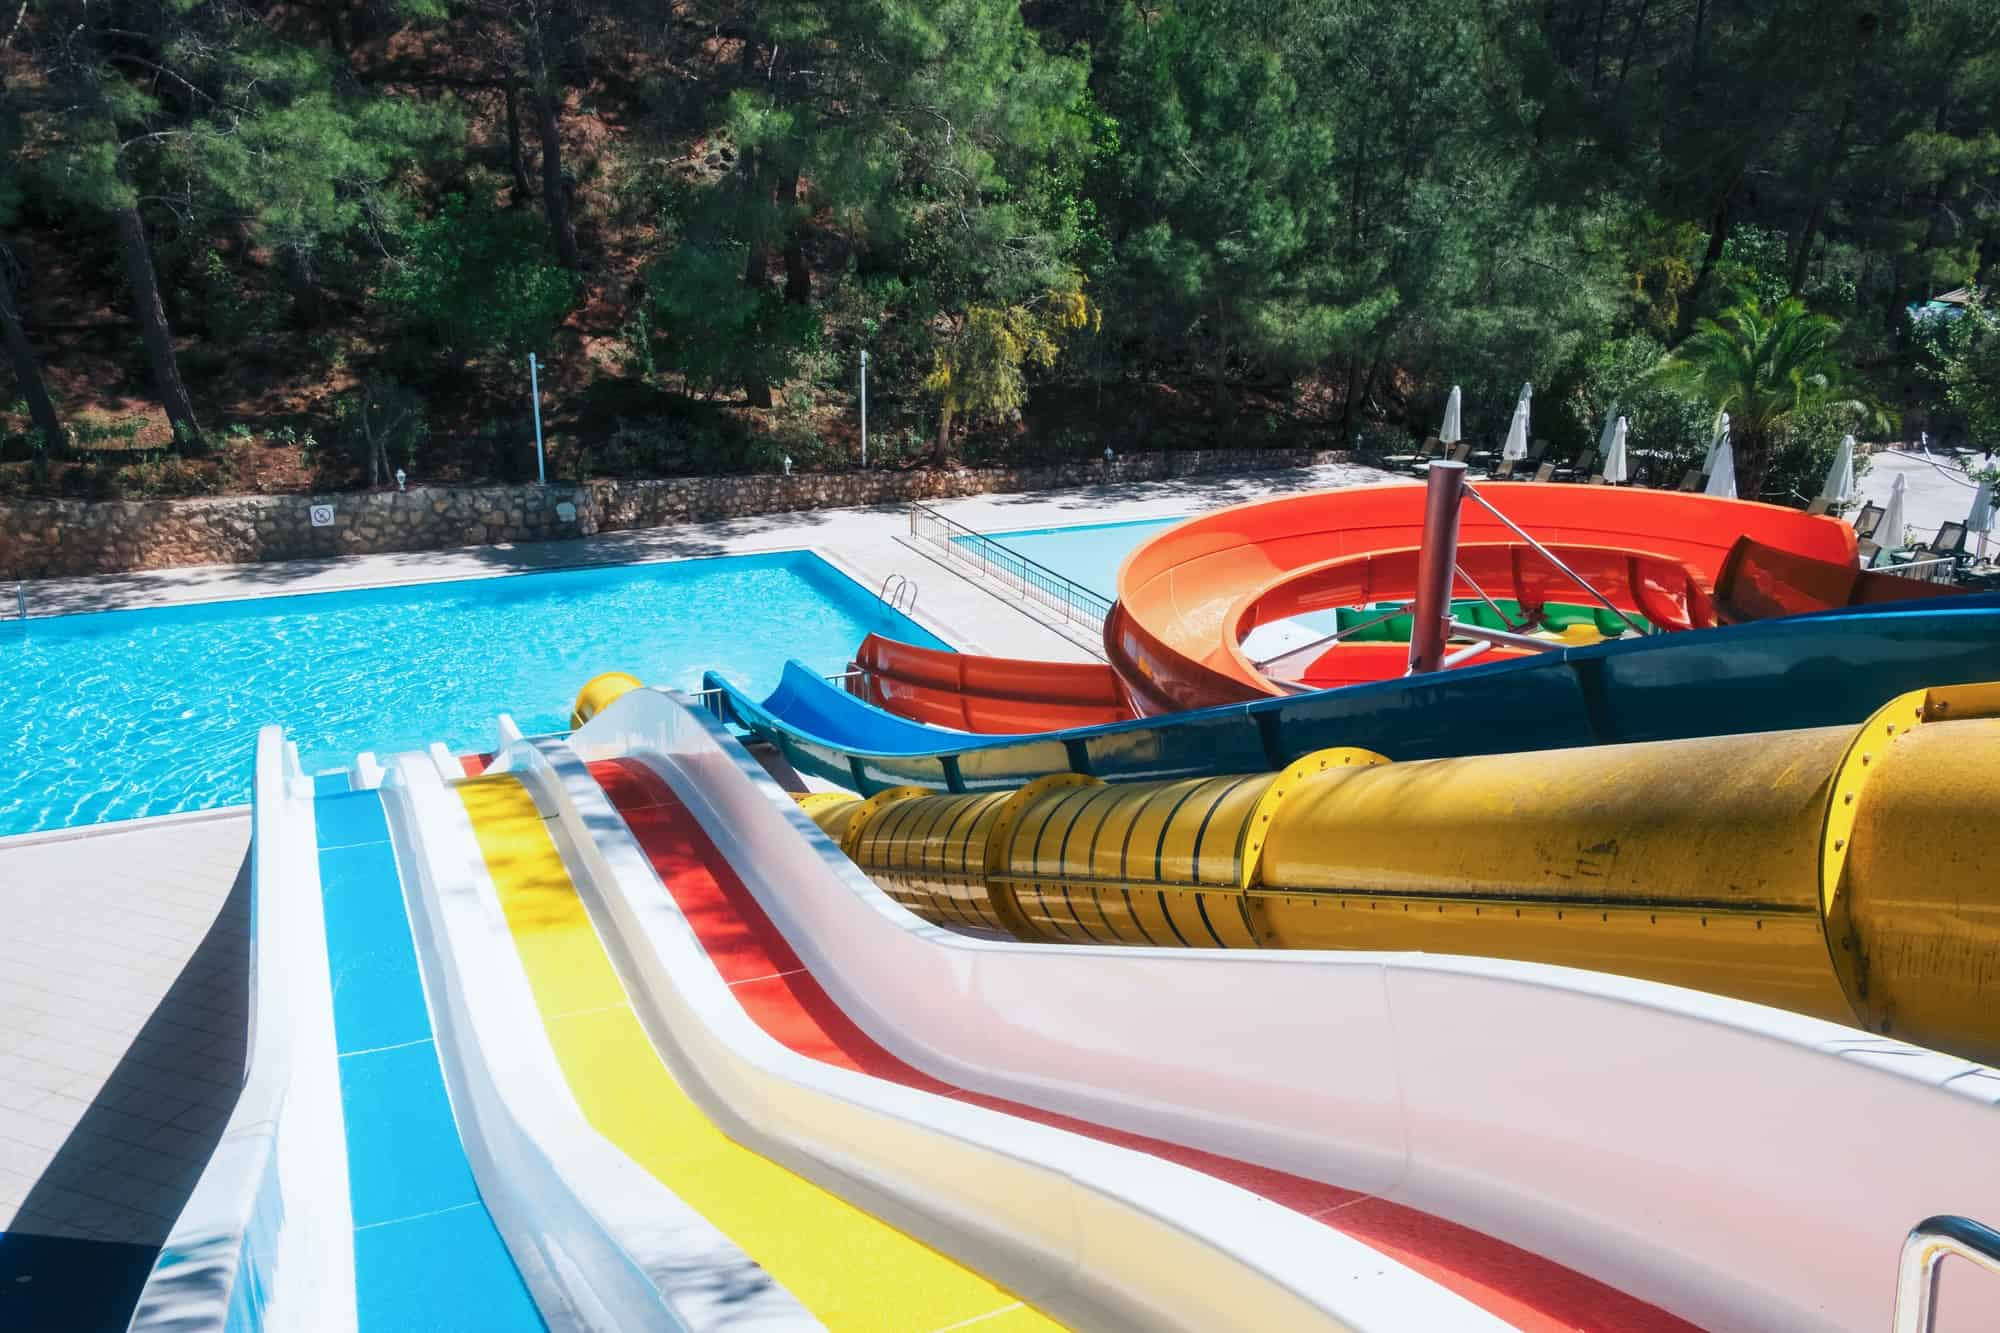 colorful aquapark in green forest